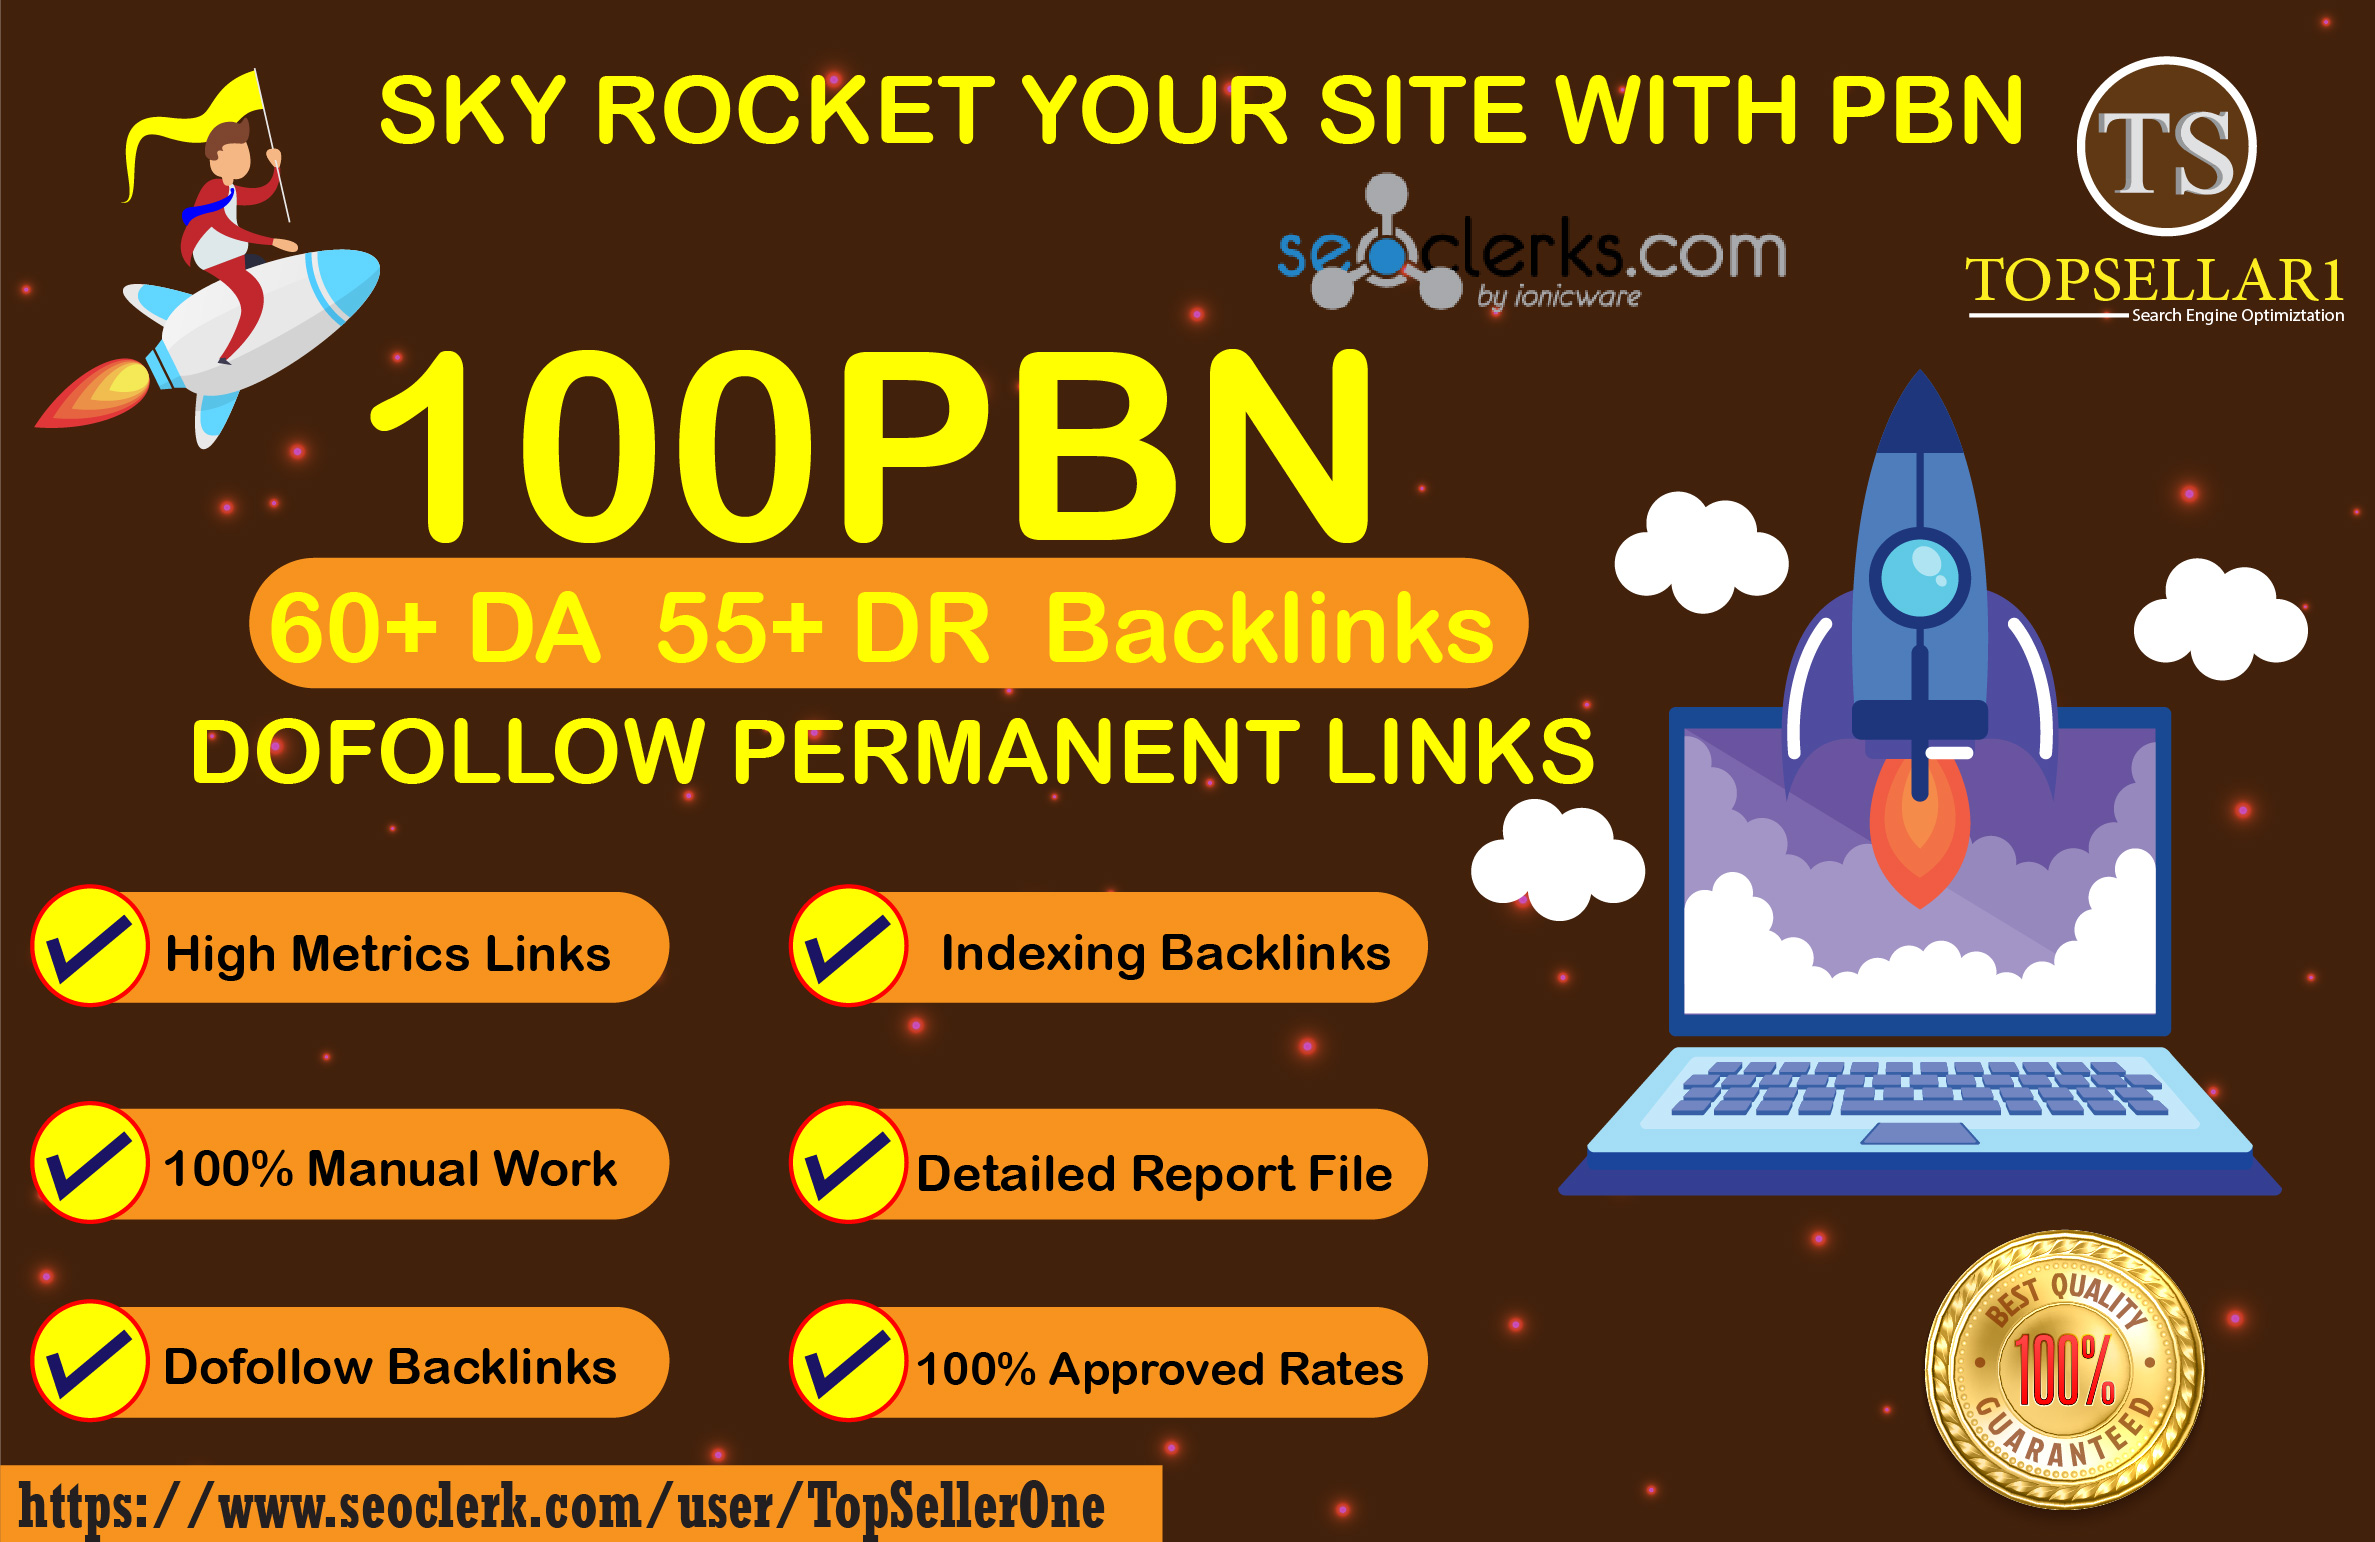 Give 100 PBN High Metrics Links 60+DA 50+DR Dofollow permanent Backlinks